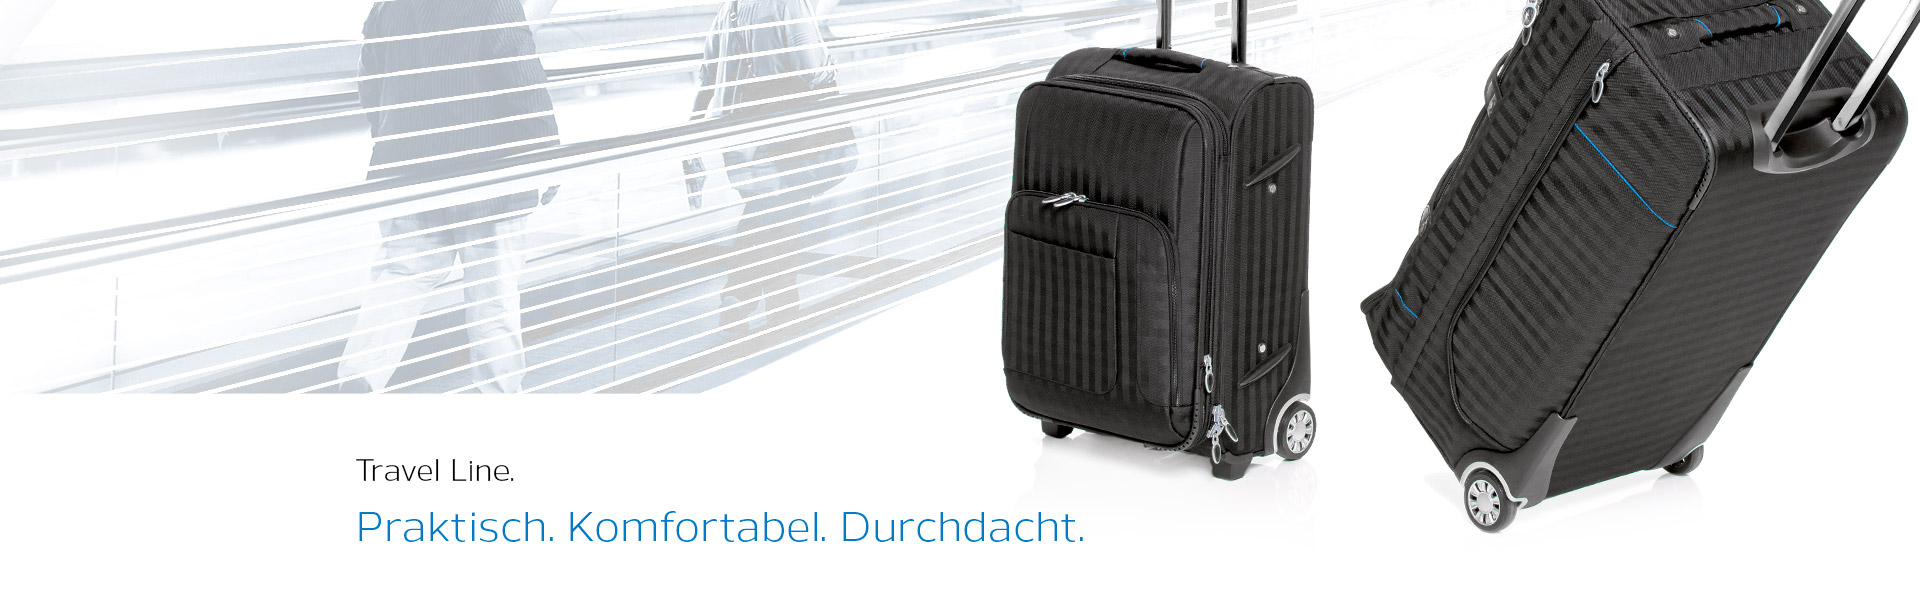 Softbags aus der Serie Travel Line